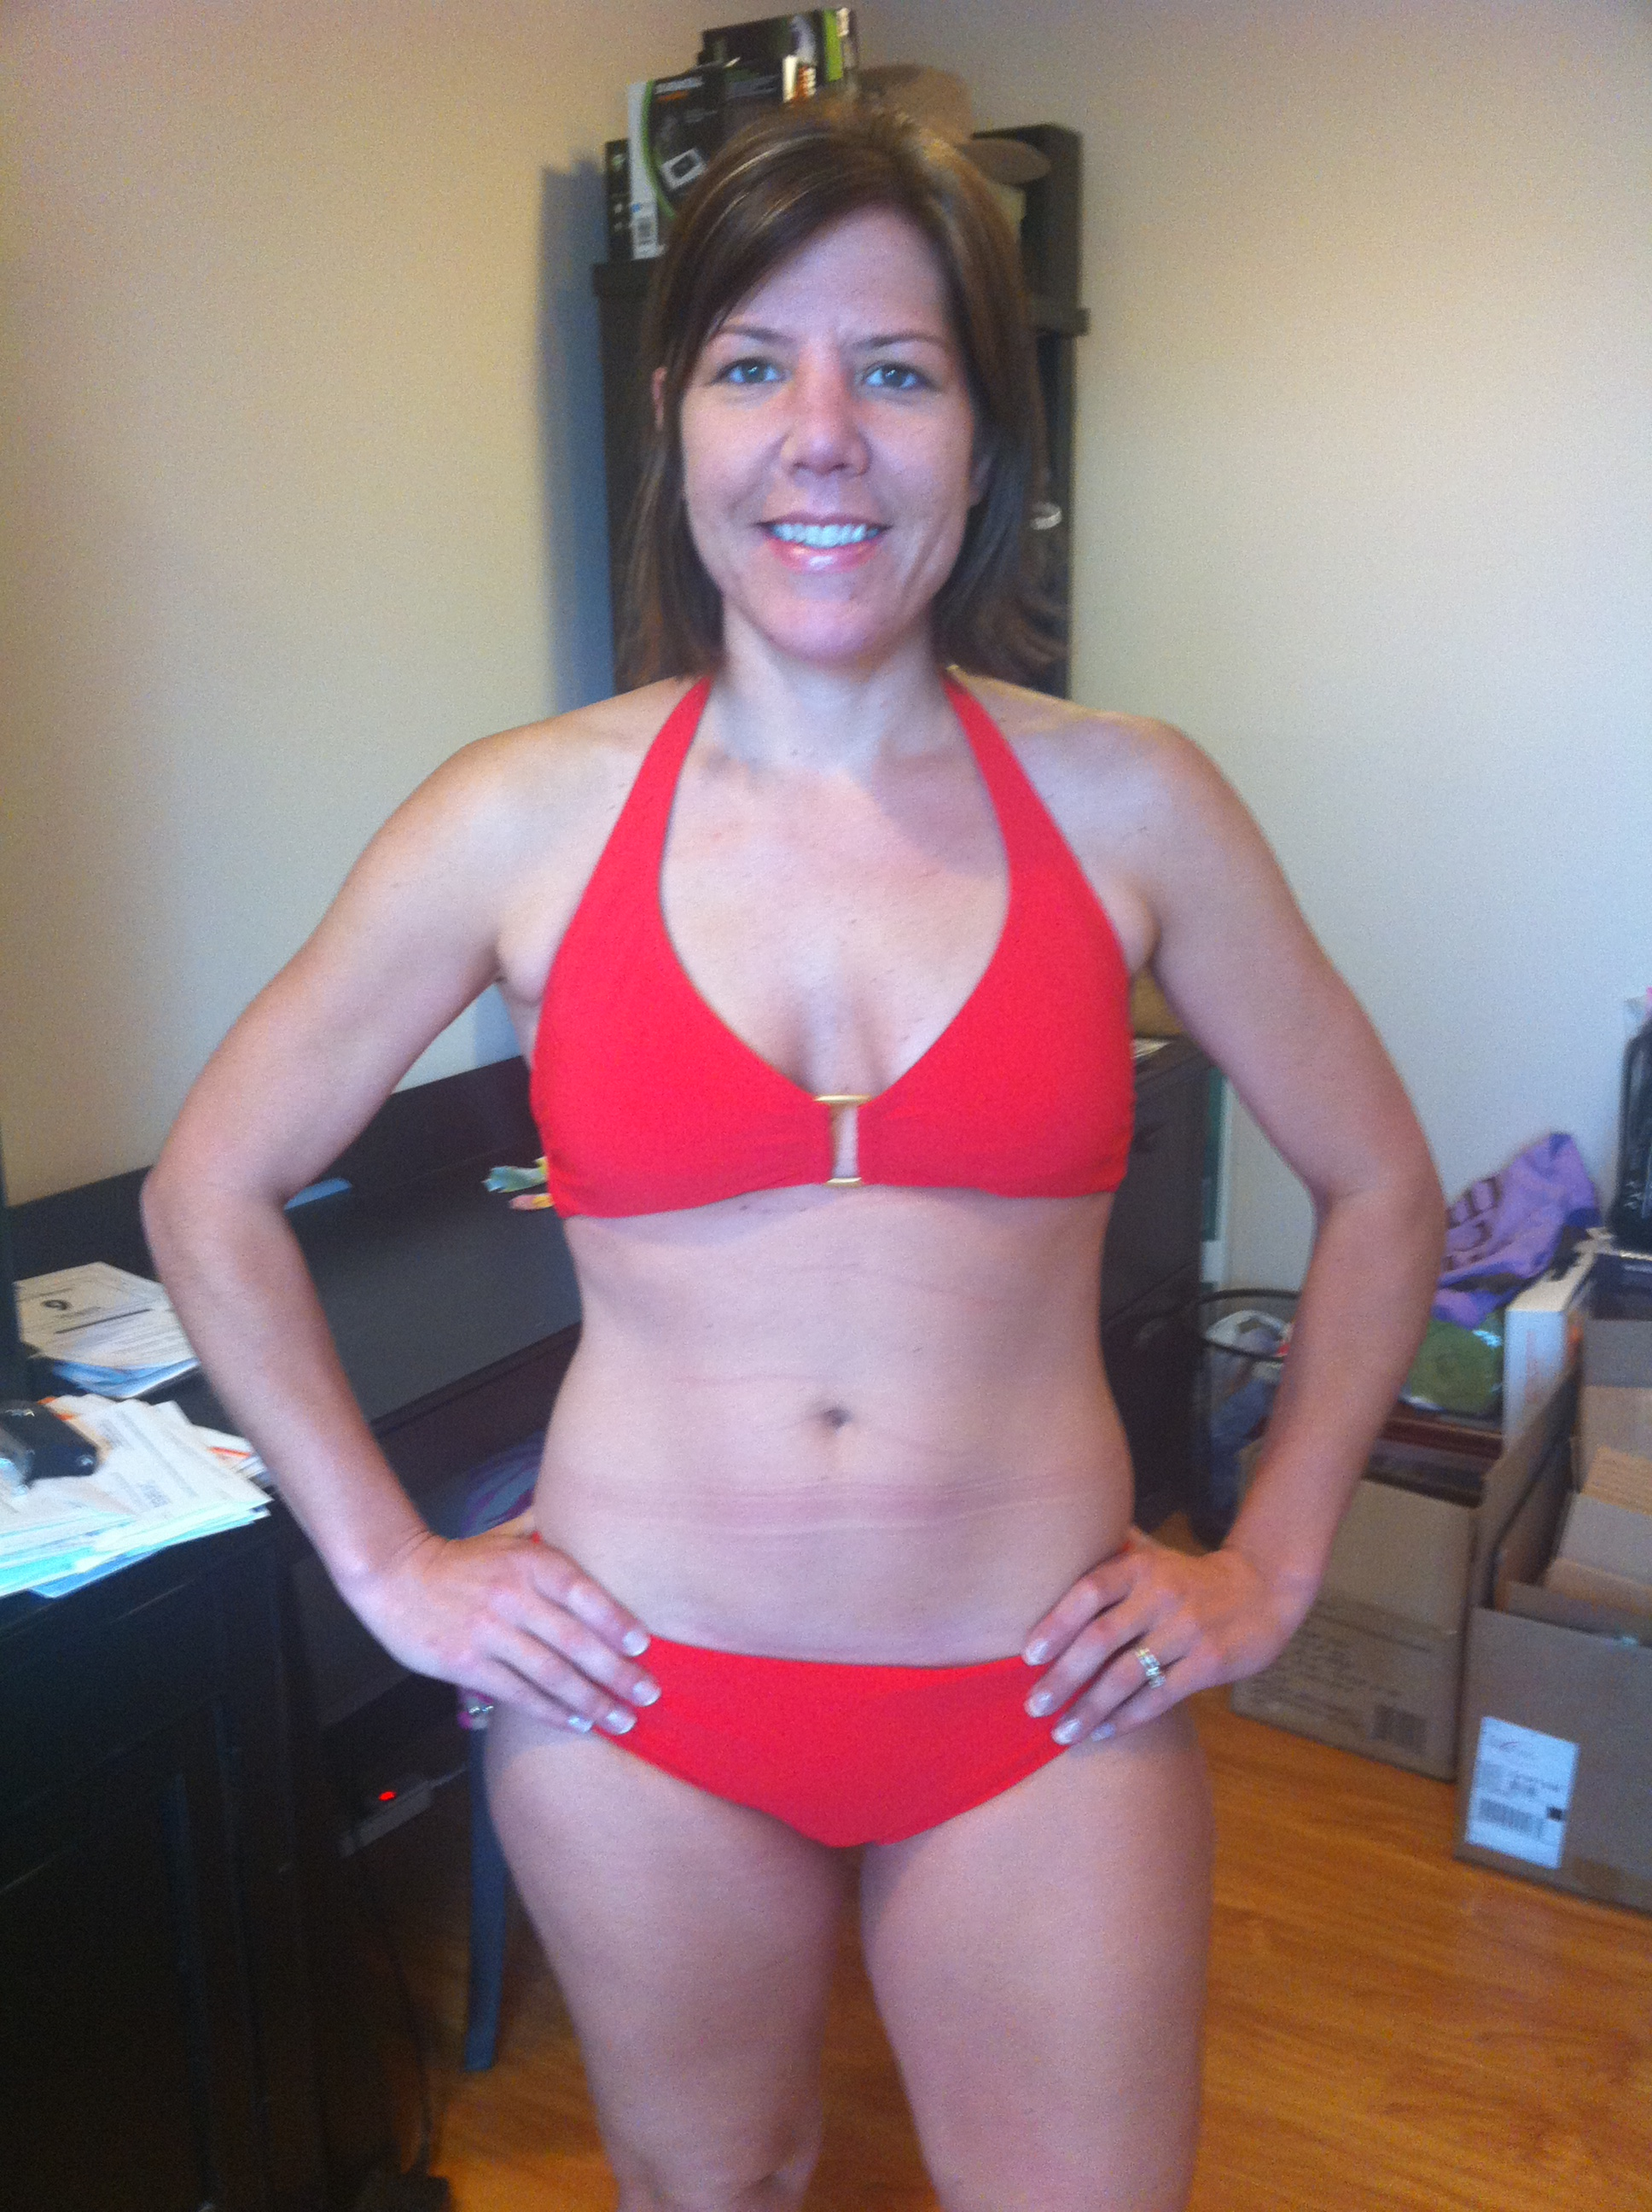 Swimsuit Confidence And A Post Baby Body